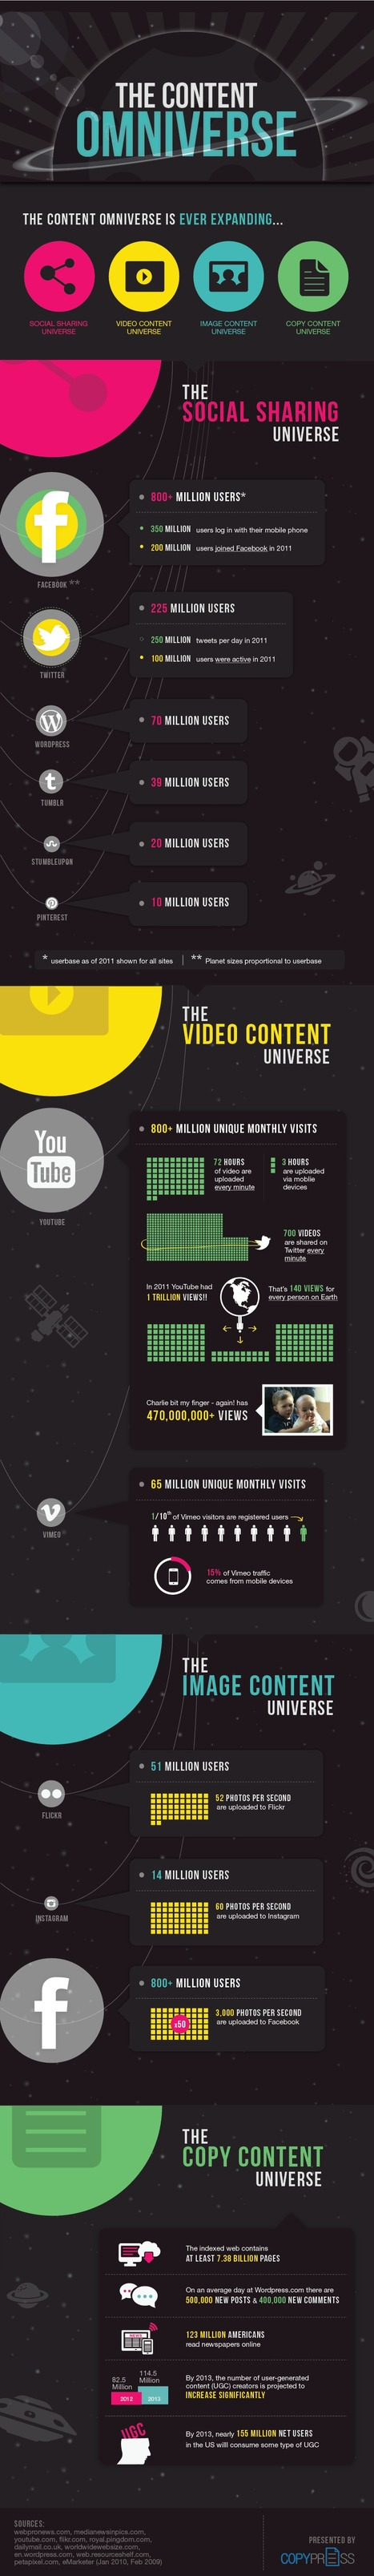 How Content is Written, Shared, Captured on Video, and Photographed [Infographic] | INFOGRAPHICS | Scoop.it